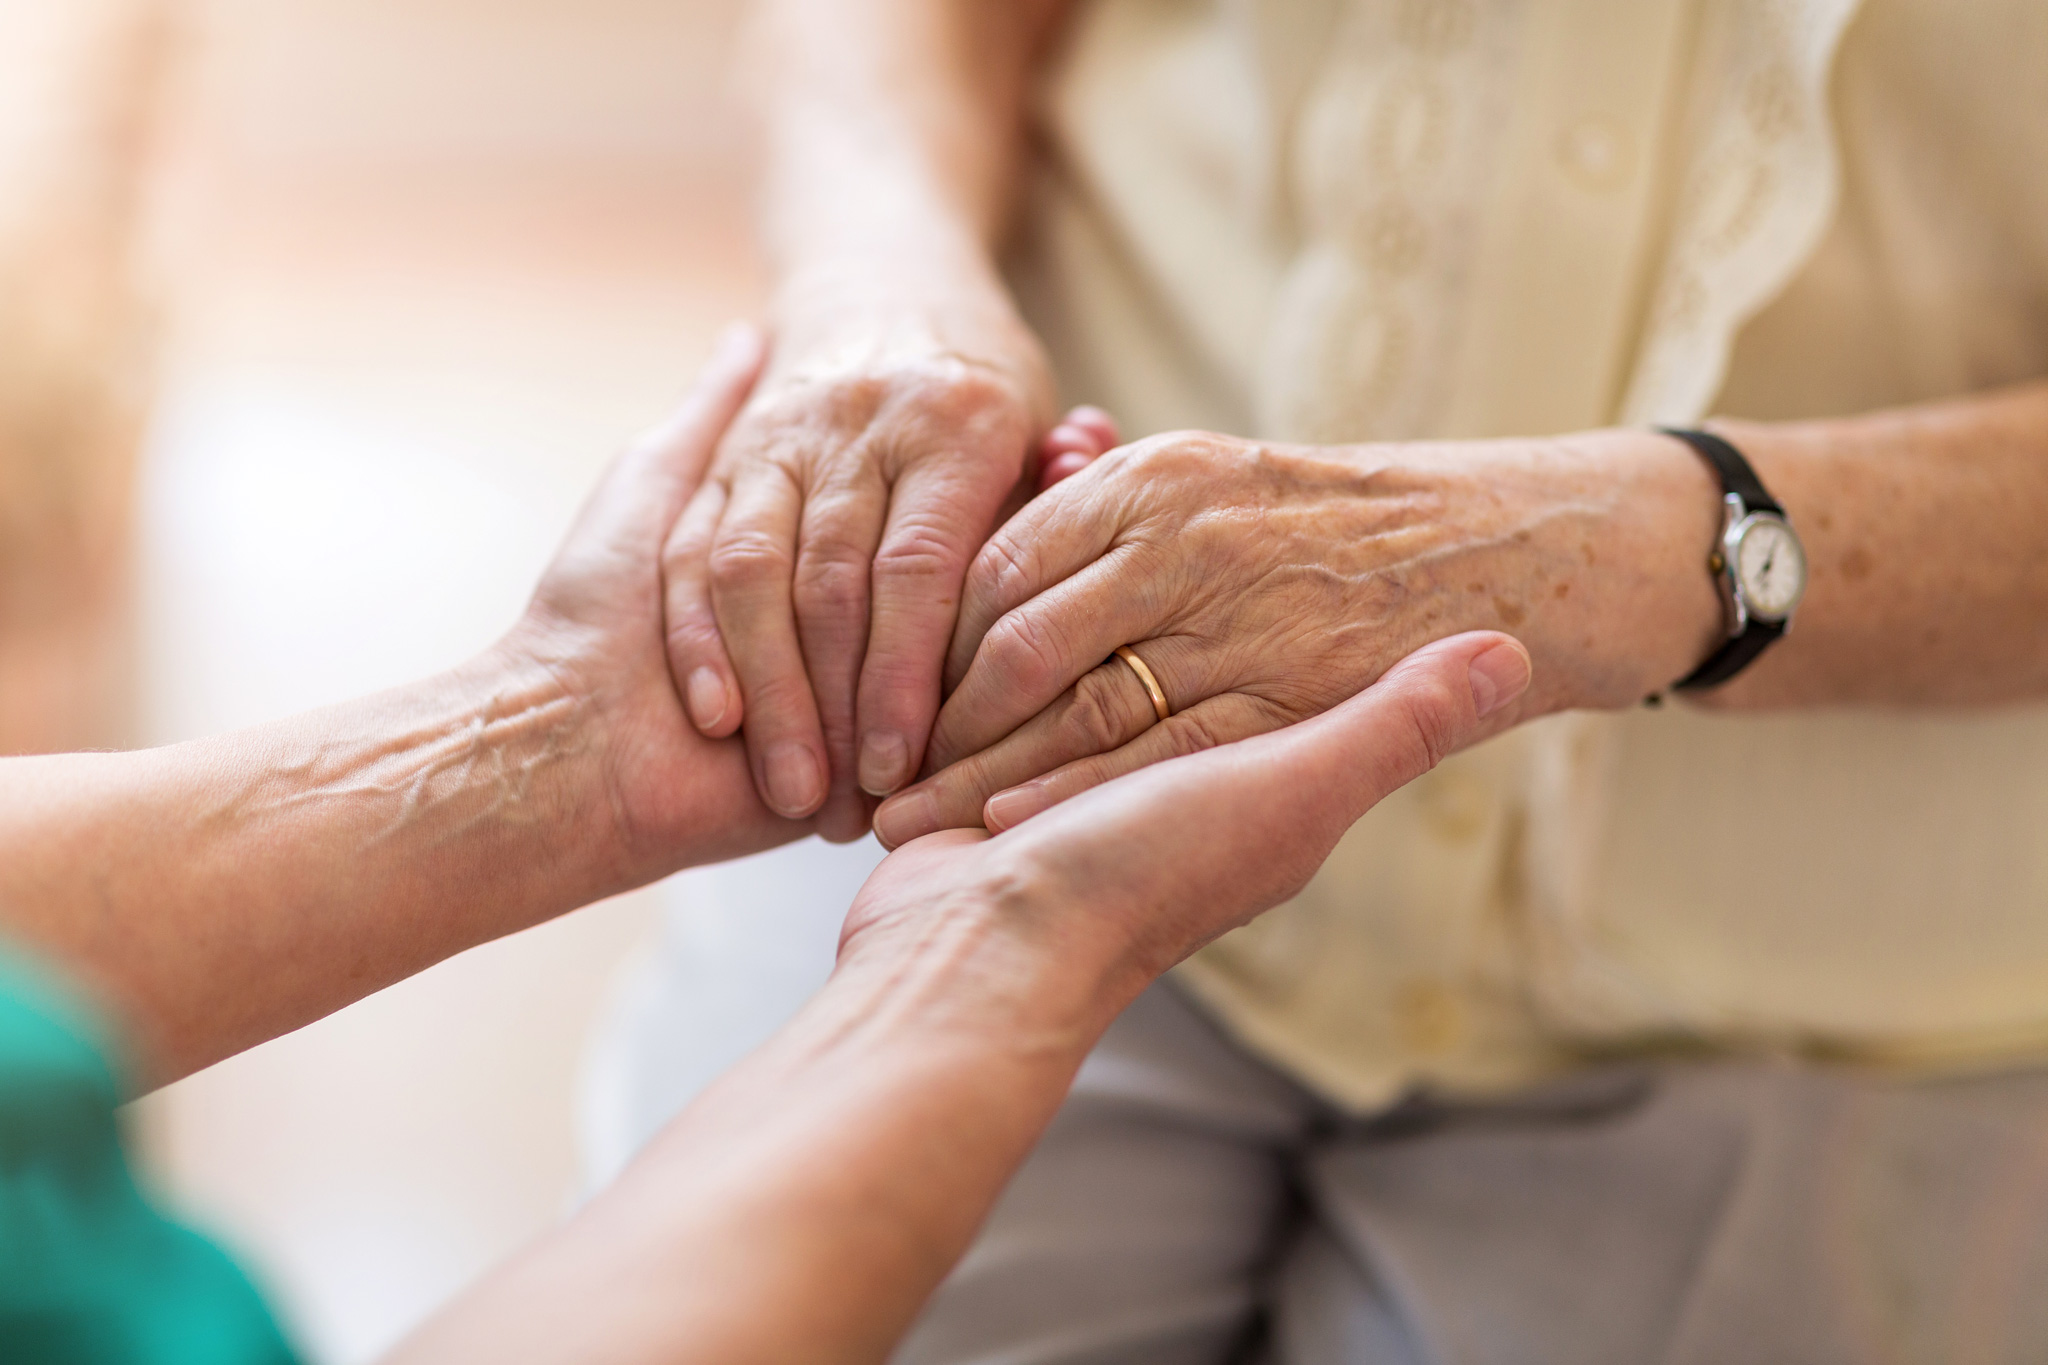 hands of elderly woman with caregiver